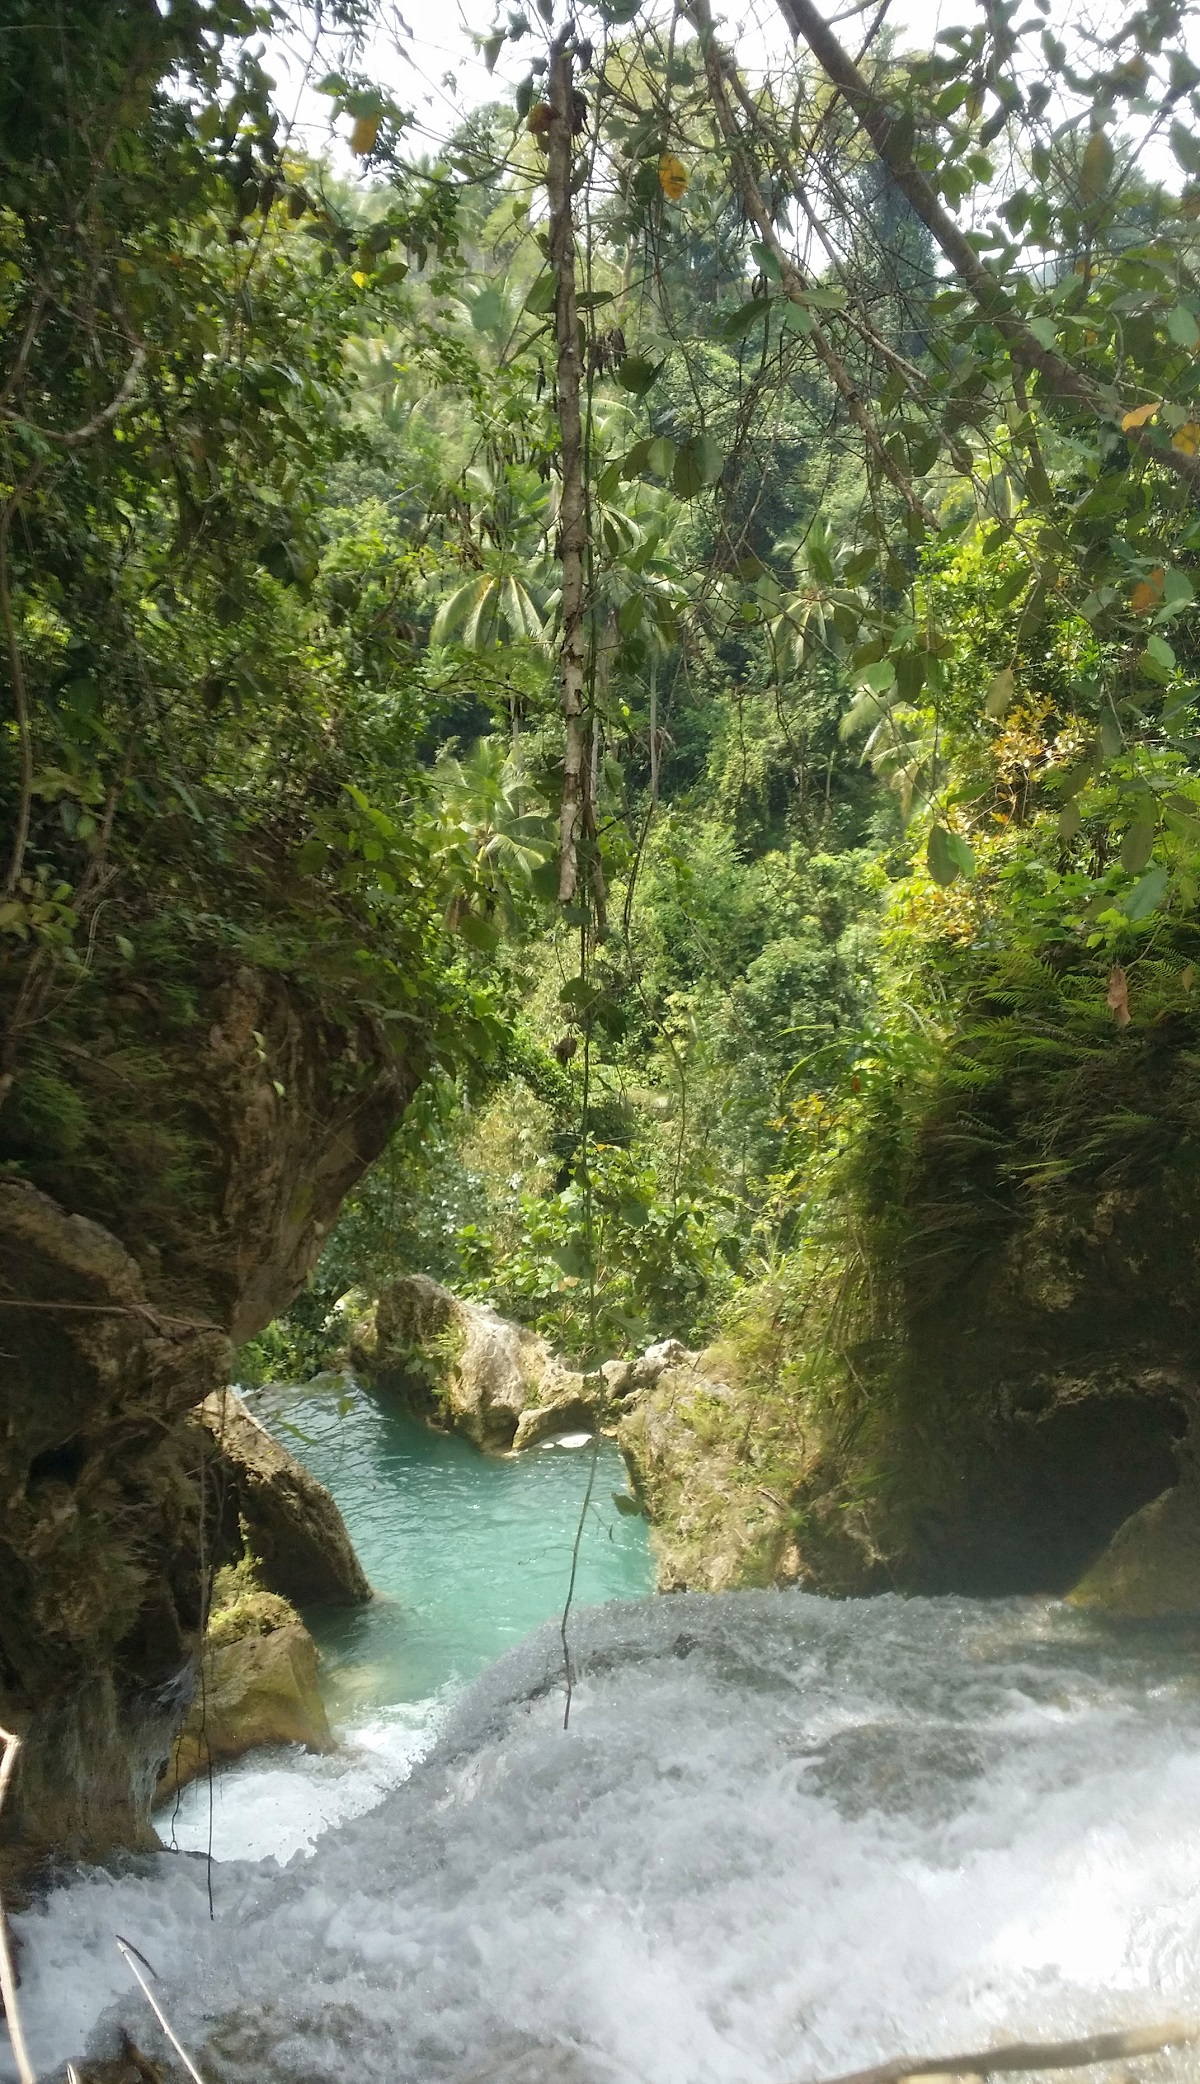 top level of Inambakan falls looking down jungle background